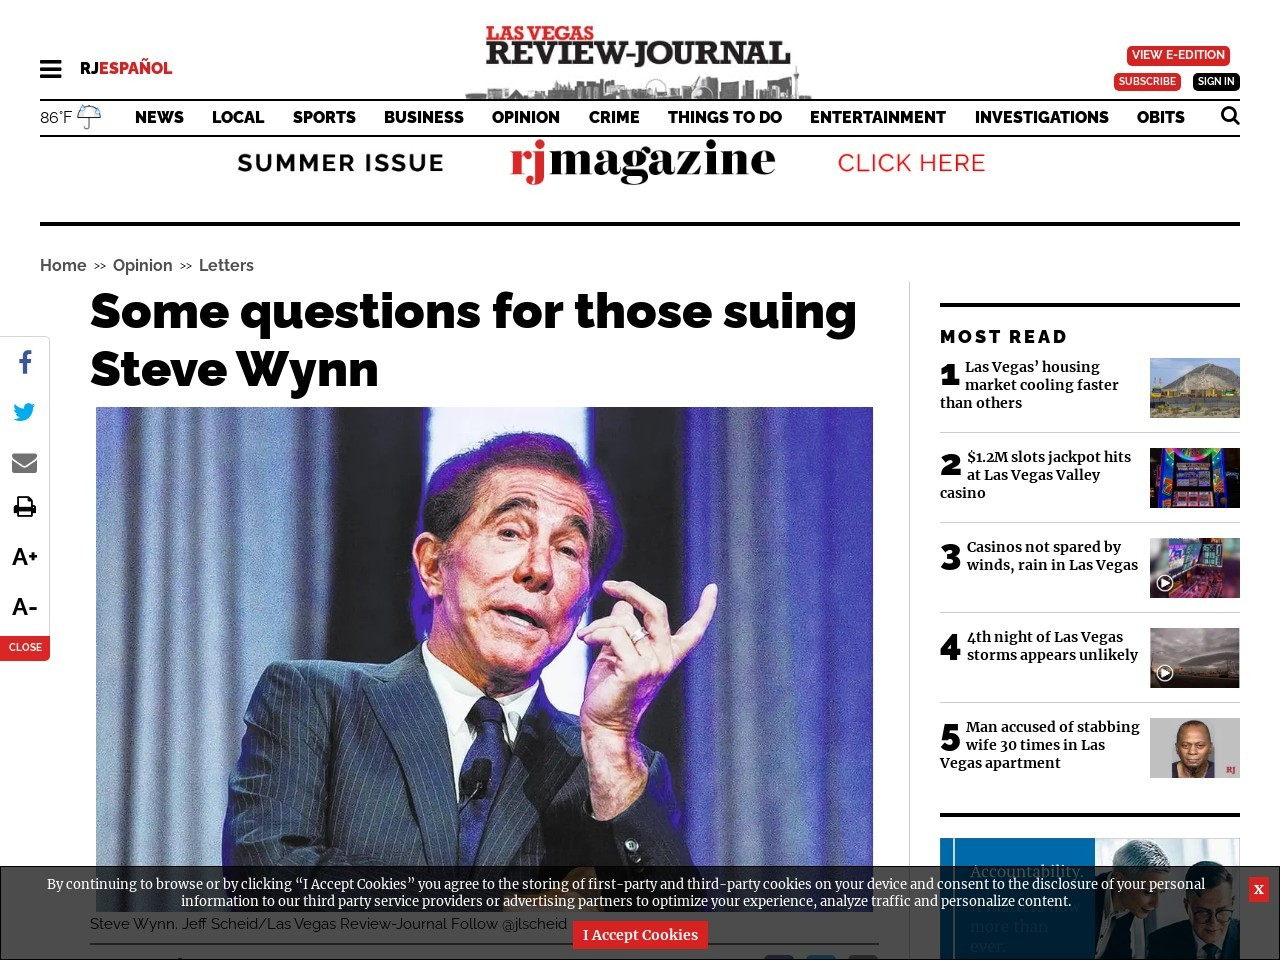 Some questions for those suing Steve Wynn